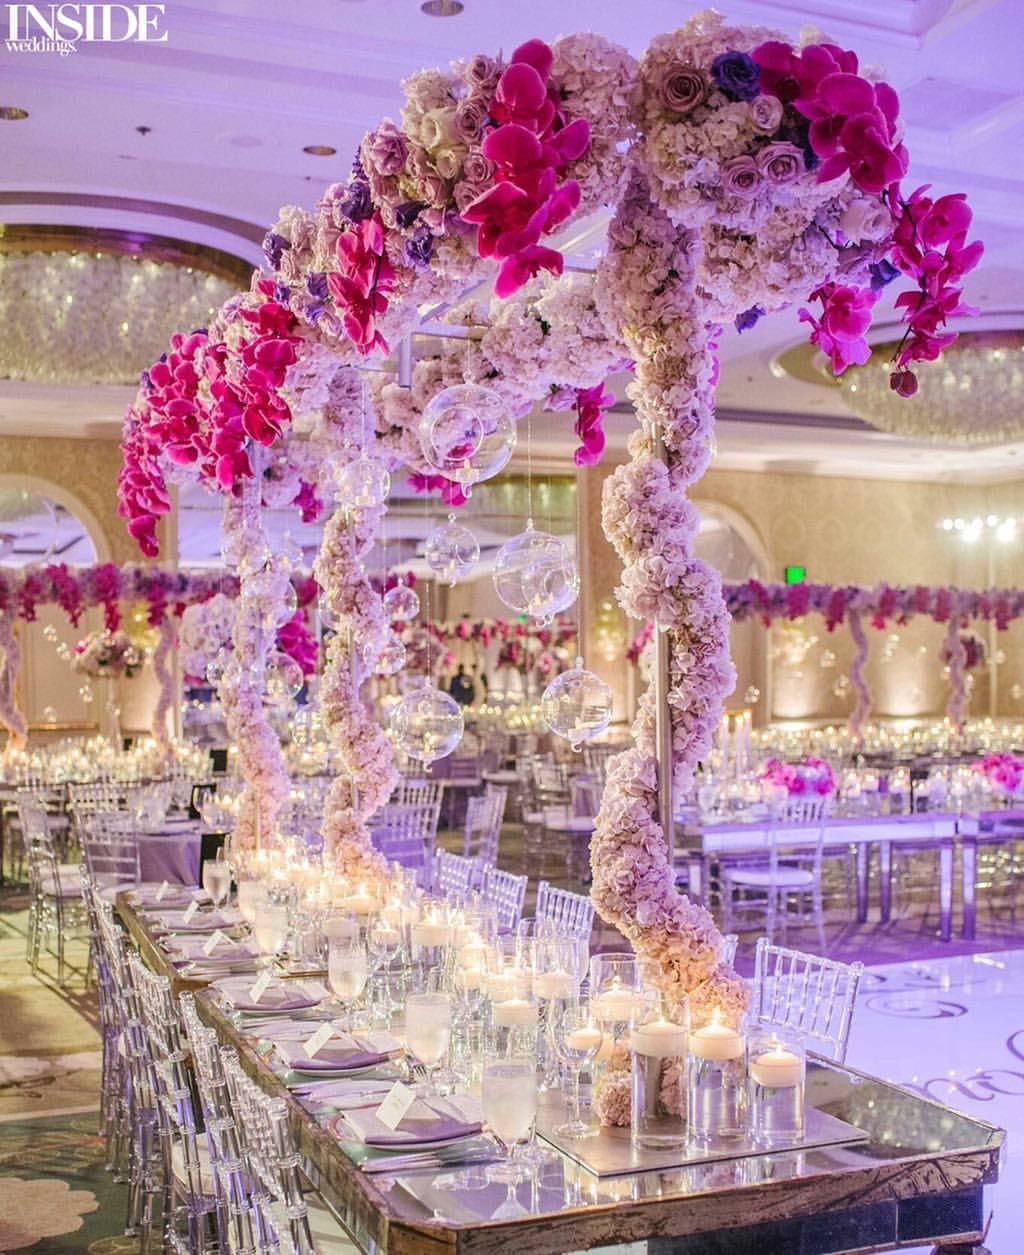 Mirror wedding | Once Upon A Wedding... | Pinterest | Centerpieces ...